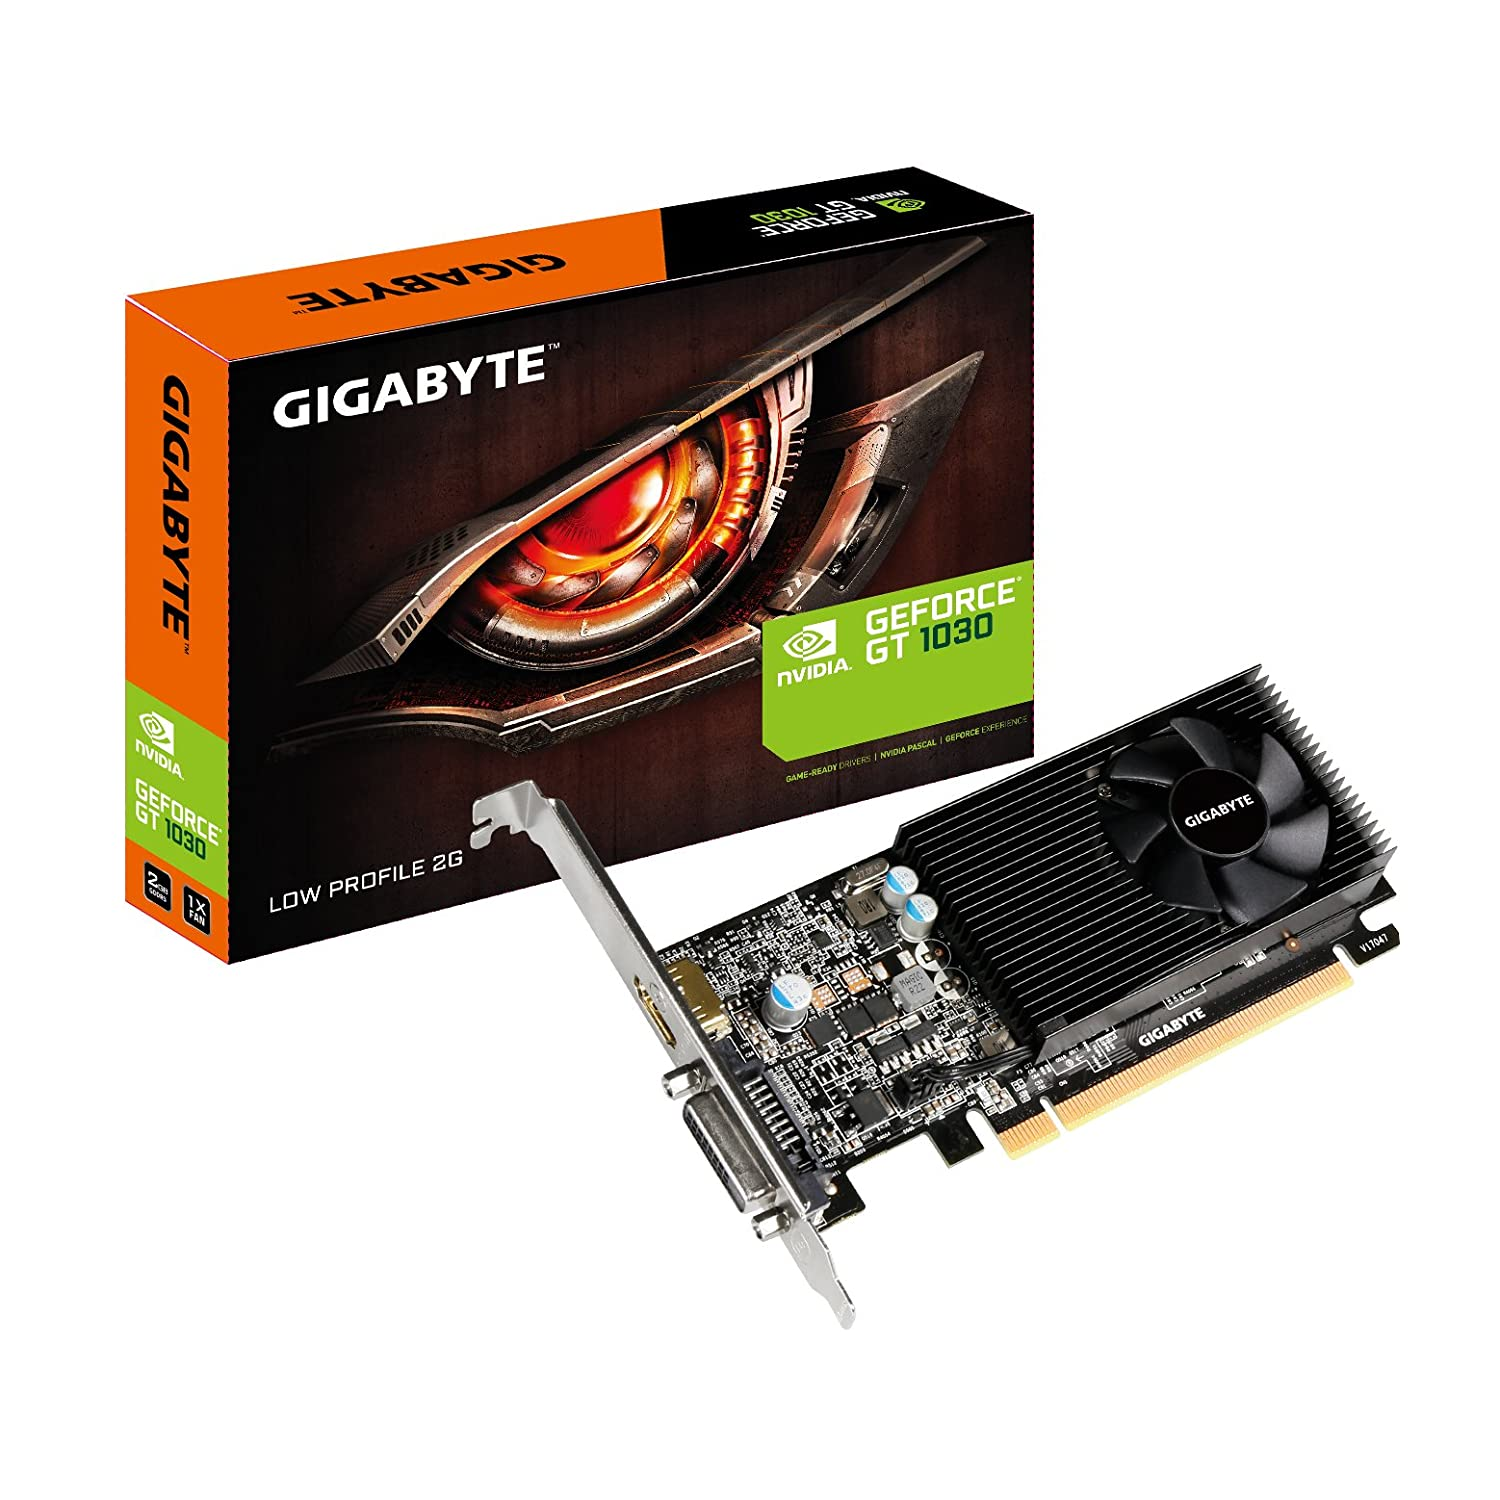 Gigabyte NVIDIA GeForce GT 1030 Low Profile 2G GDDR5 64 Bit Memory PCI  Express Graphics Card - Black: Amazon.co.uk: Computers & Accessories